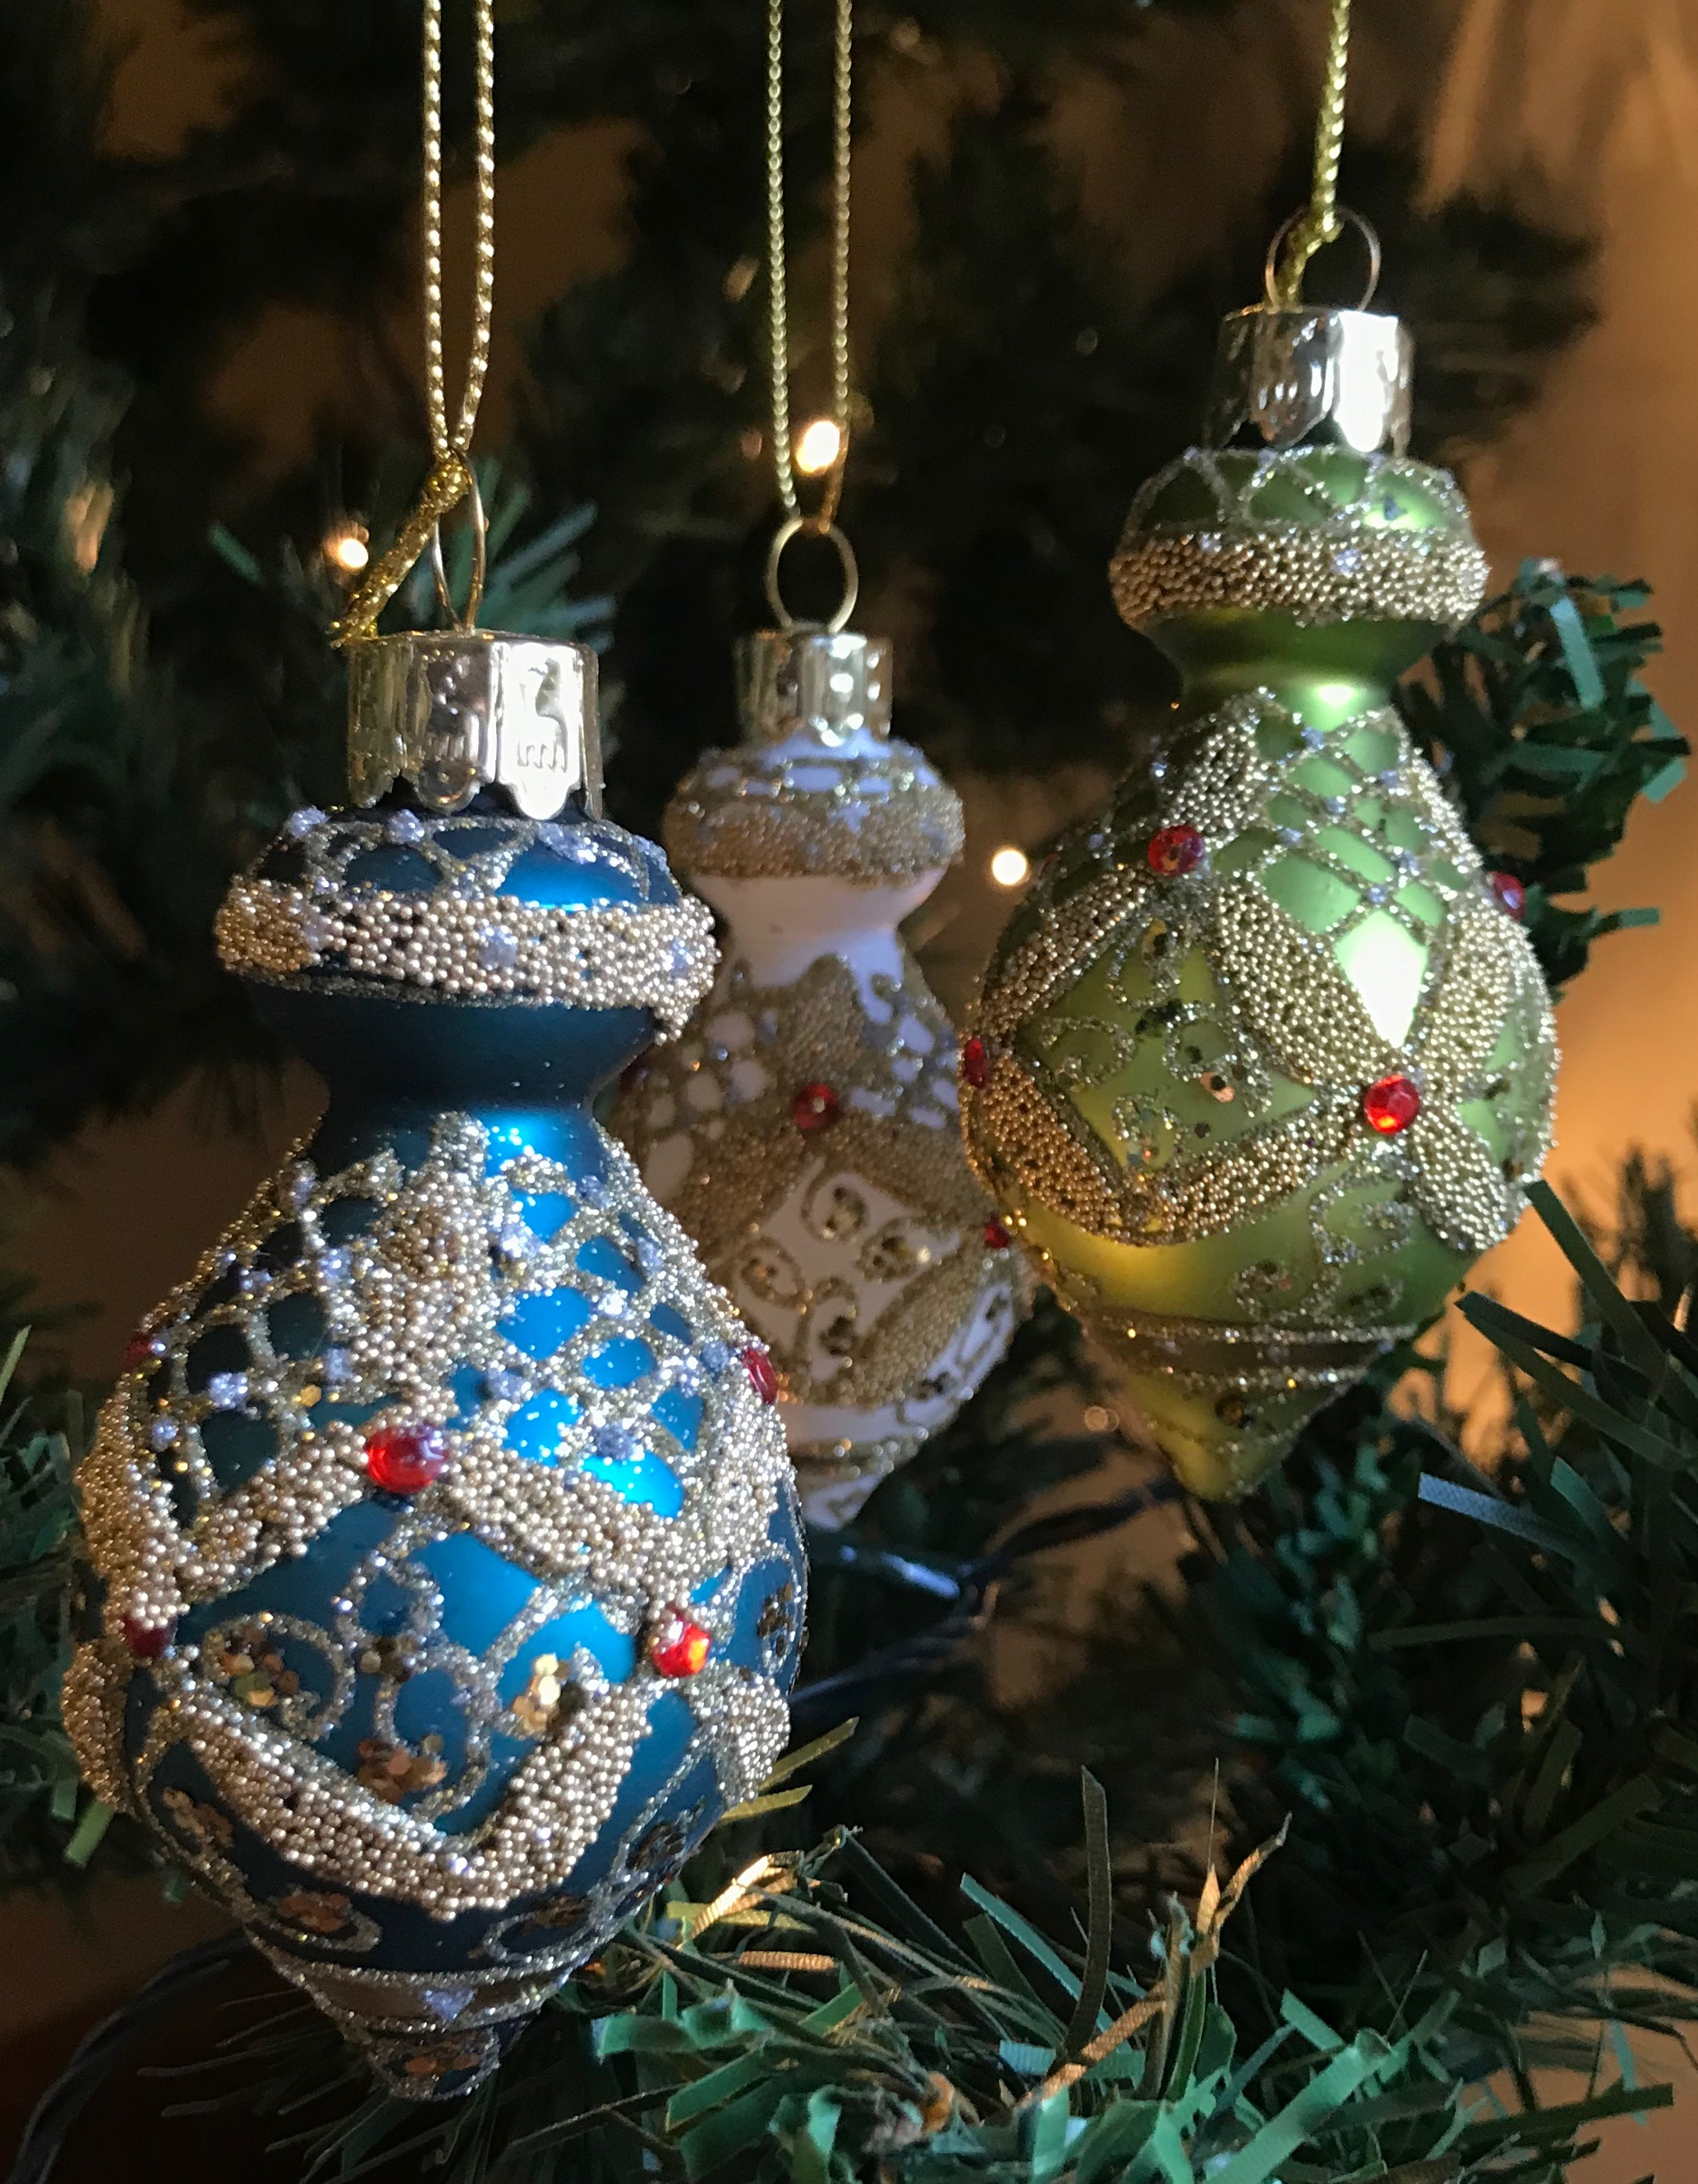 Decadent Baubles